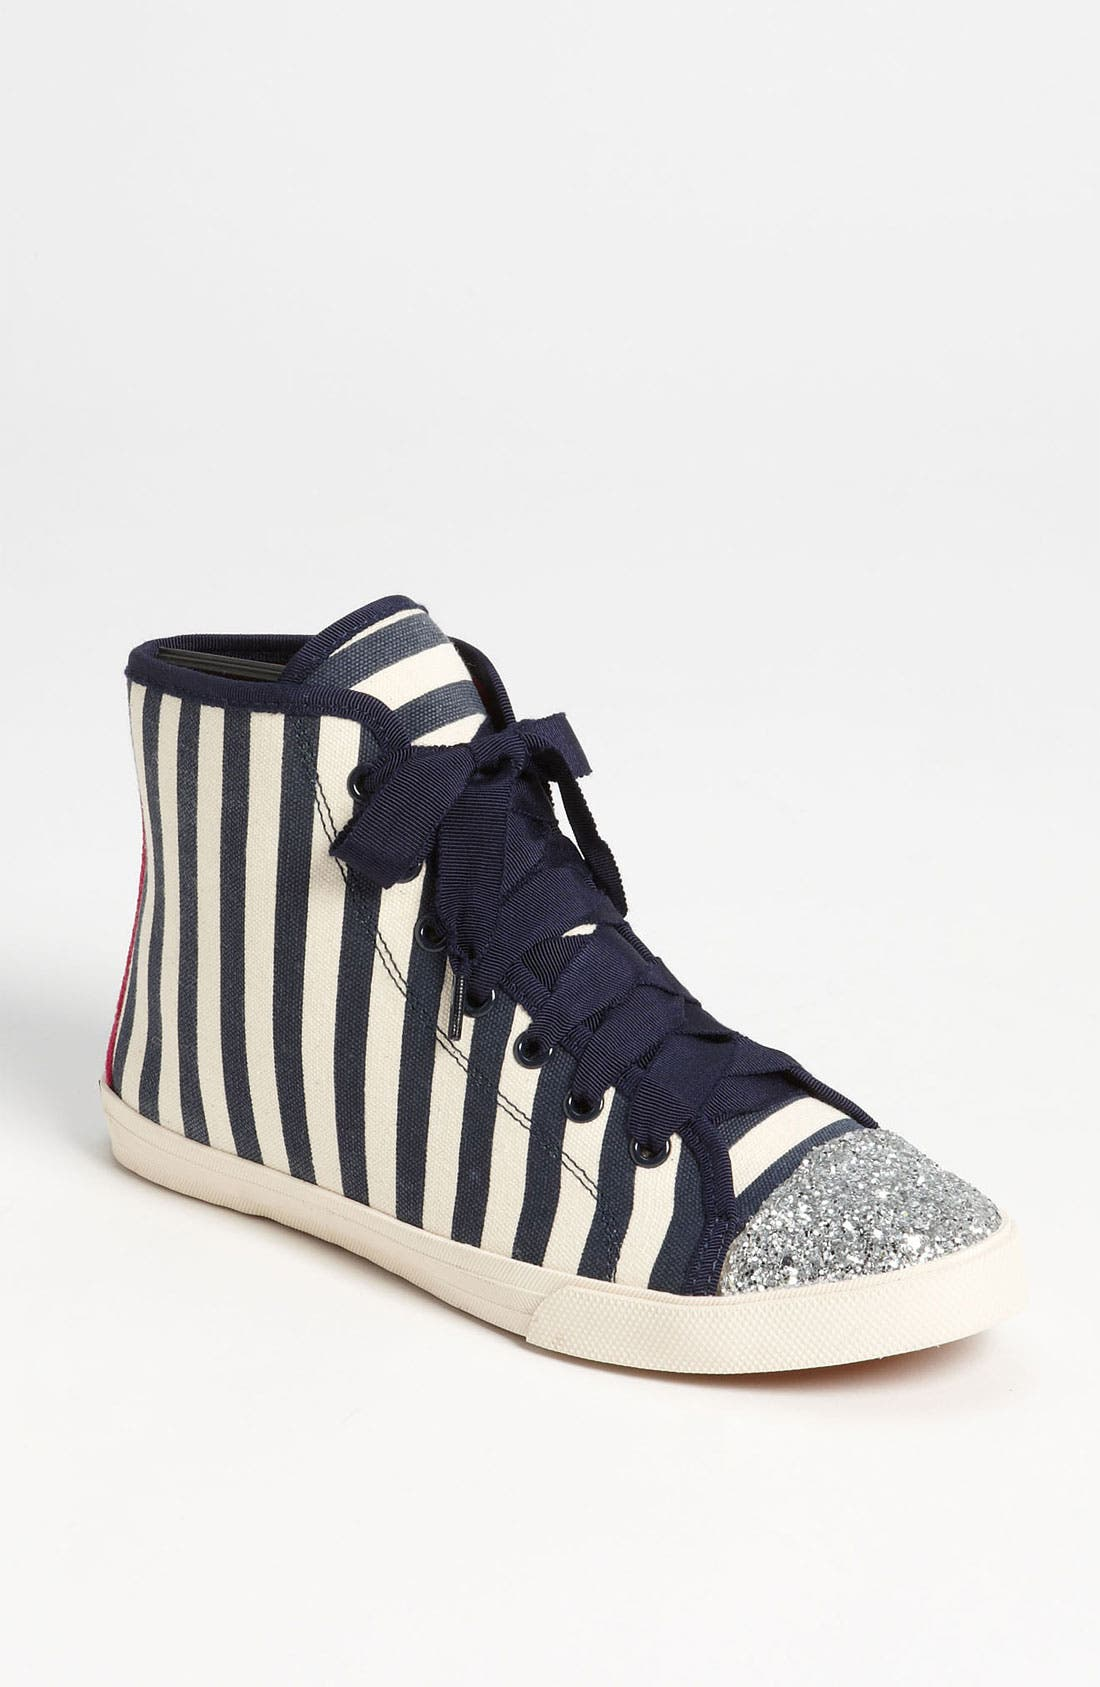 Main Image - kate spade new york 'lorna' sneaker